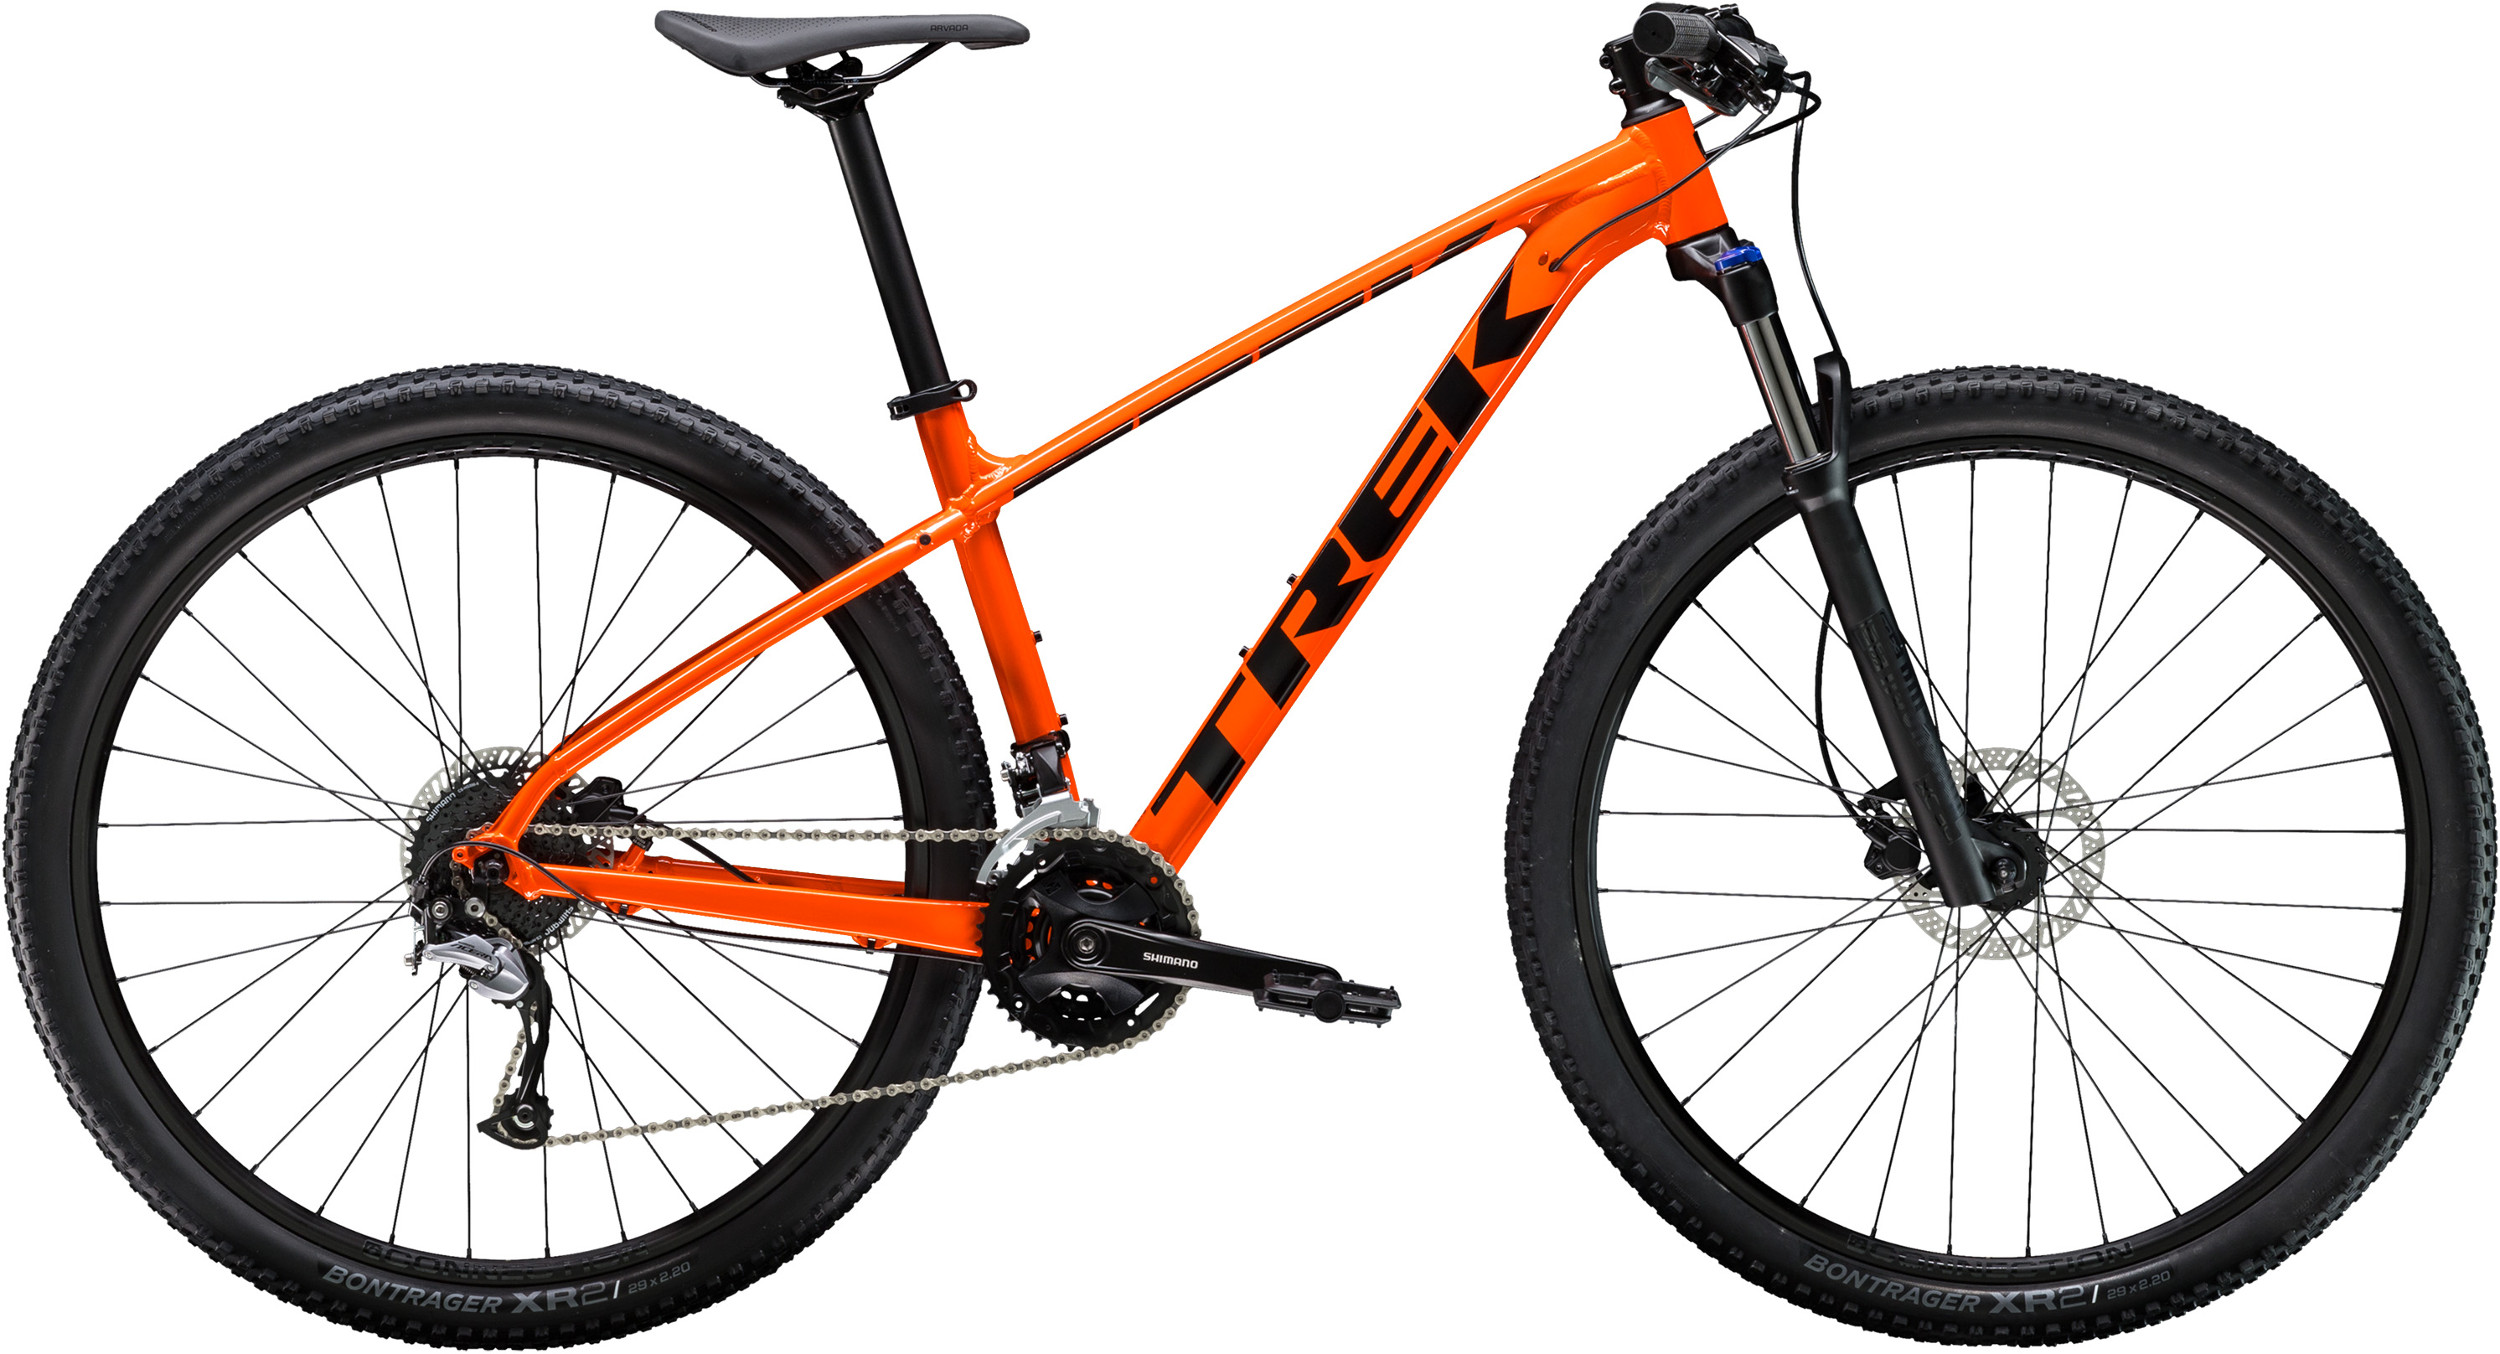 07eaf739eead8 Trek Marlin 7 Hardtail Mountain Bike 2019 Roarange £550.00